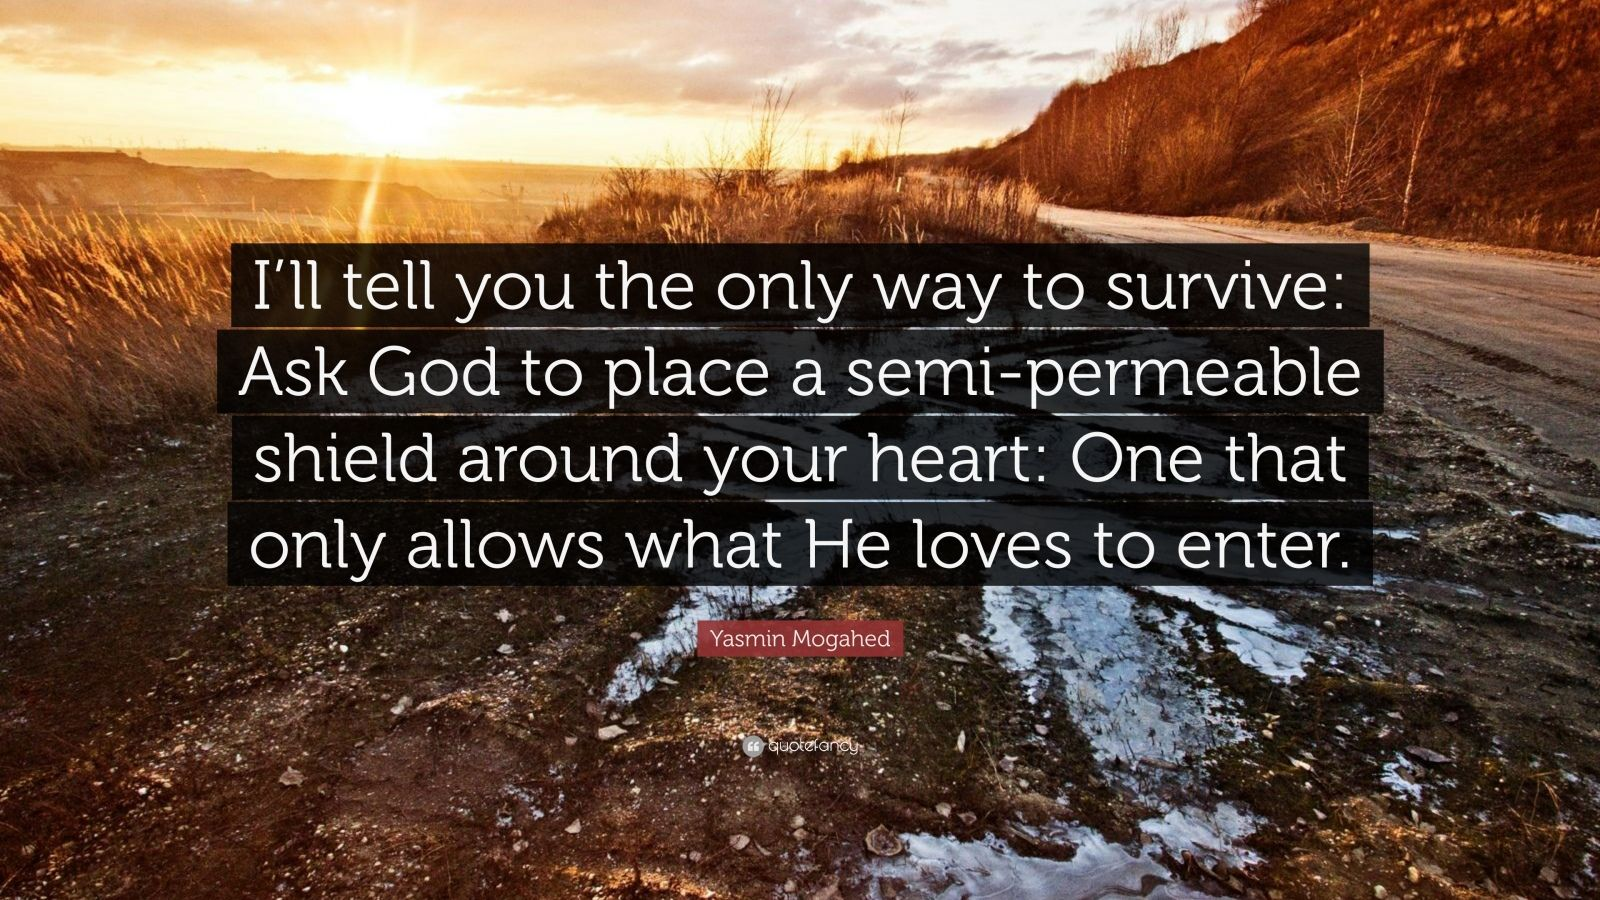 "Yasmin Mogahed Quote: ""I'll tell you the only way to survive: Ask God to place a semi-permeable shield around your heart: One that only allows what He loves to enter."""